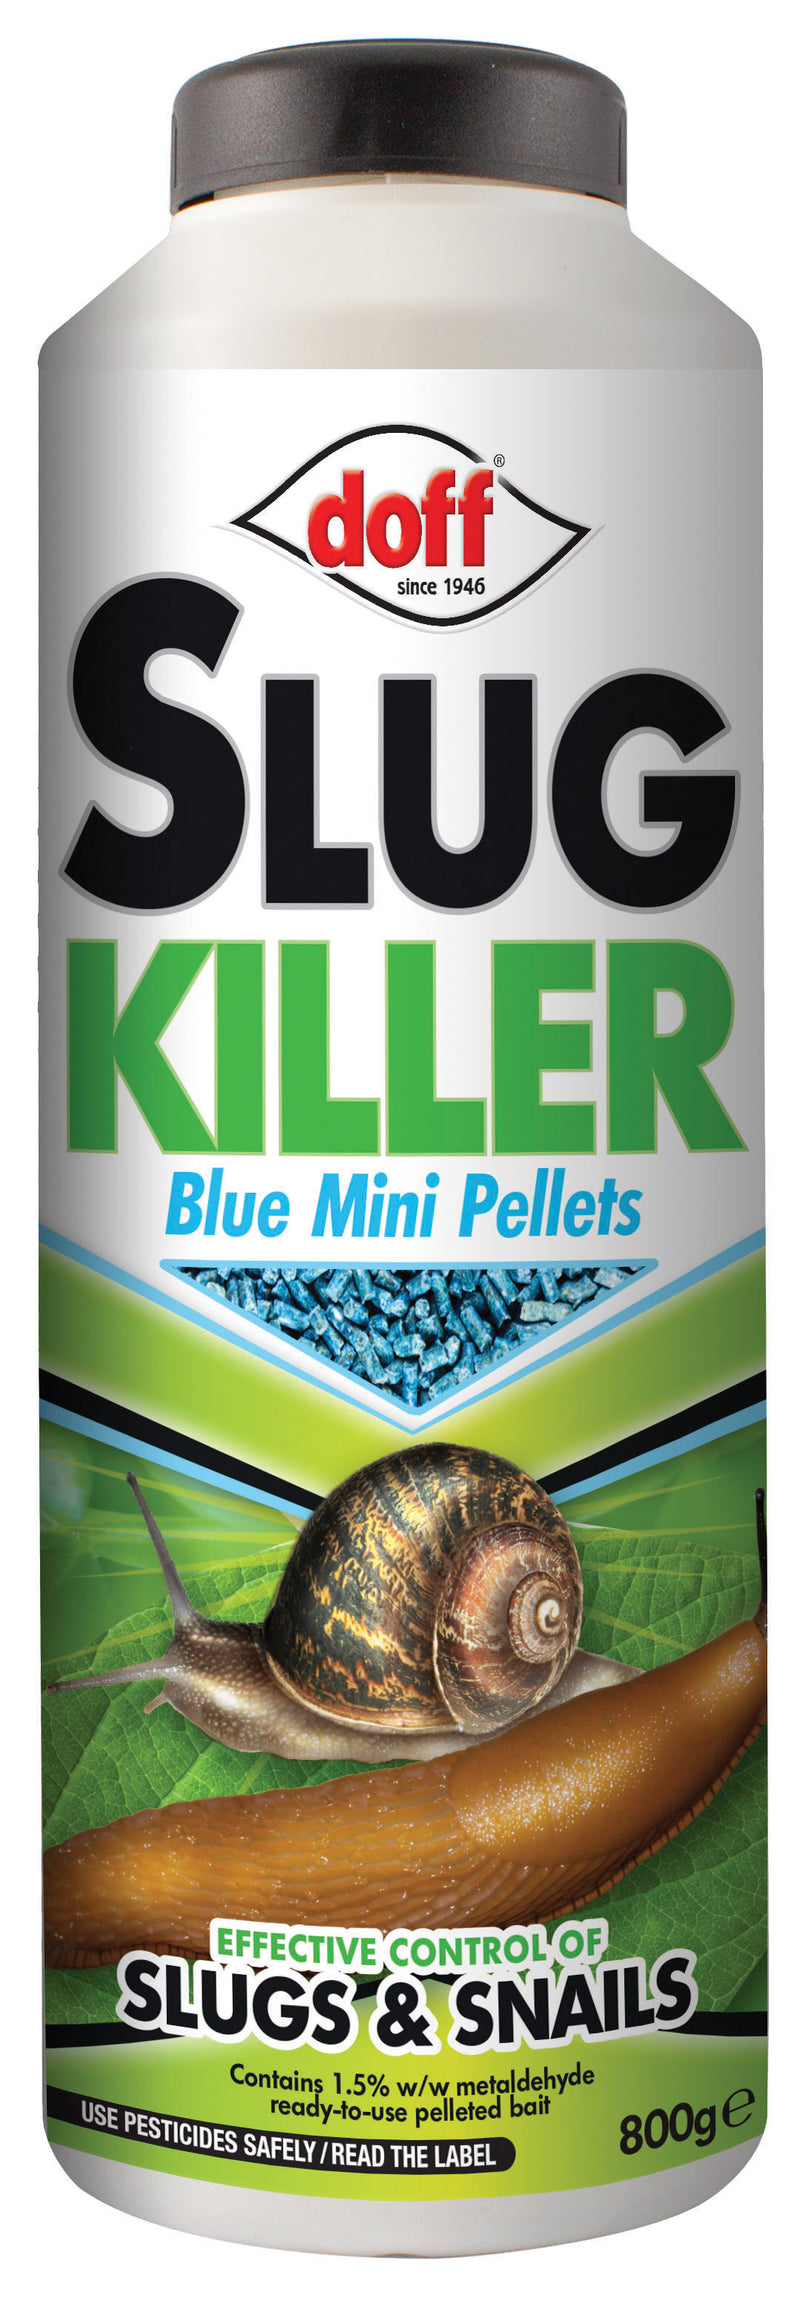 Slug Killer Blue Mini Pellets 800g